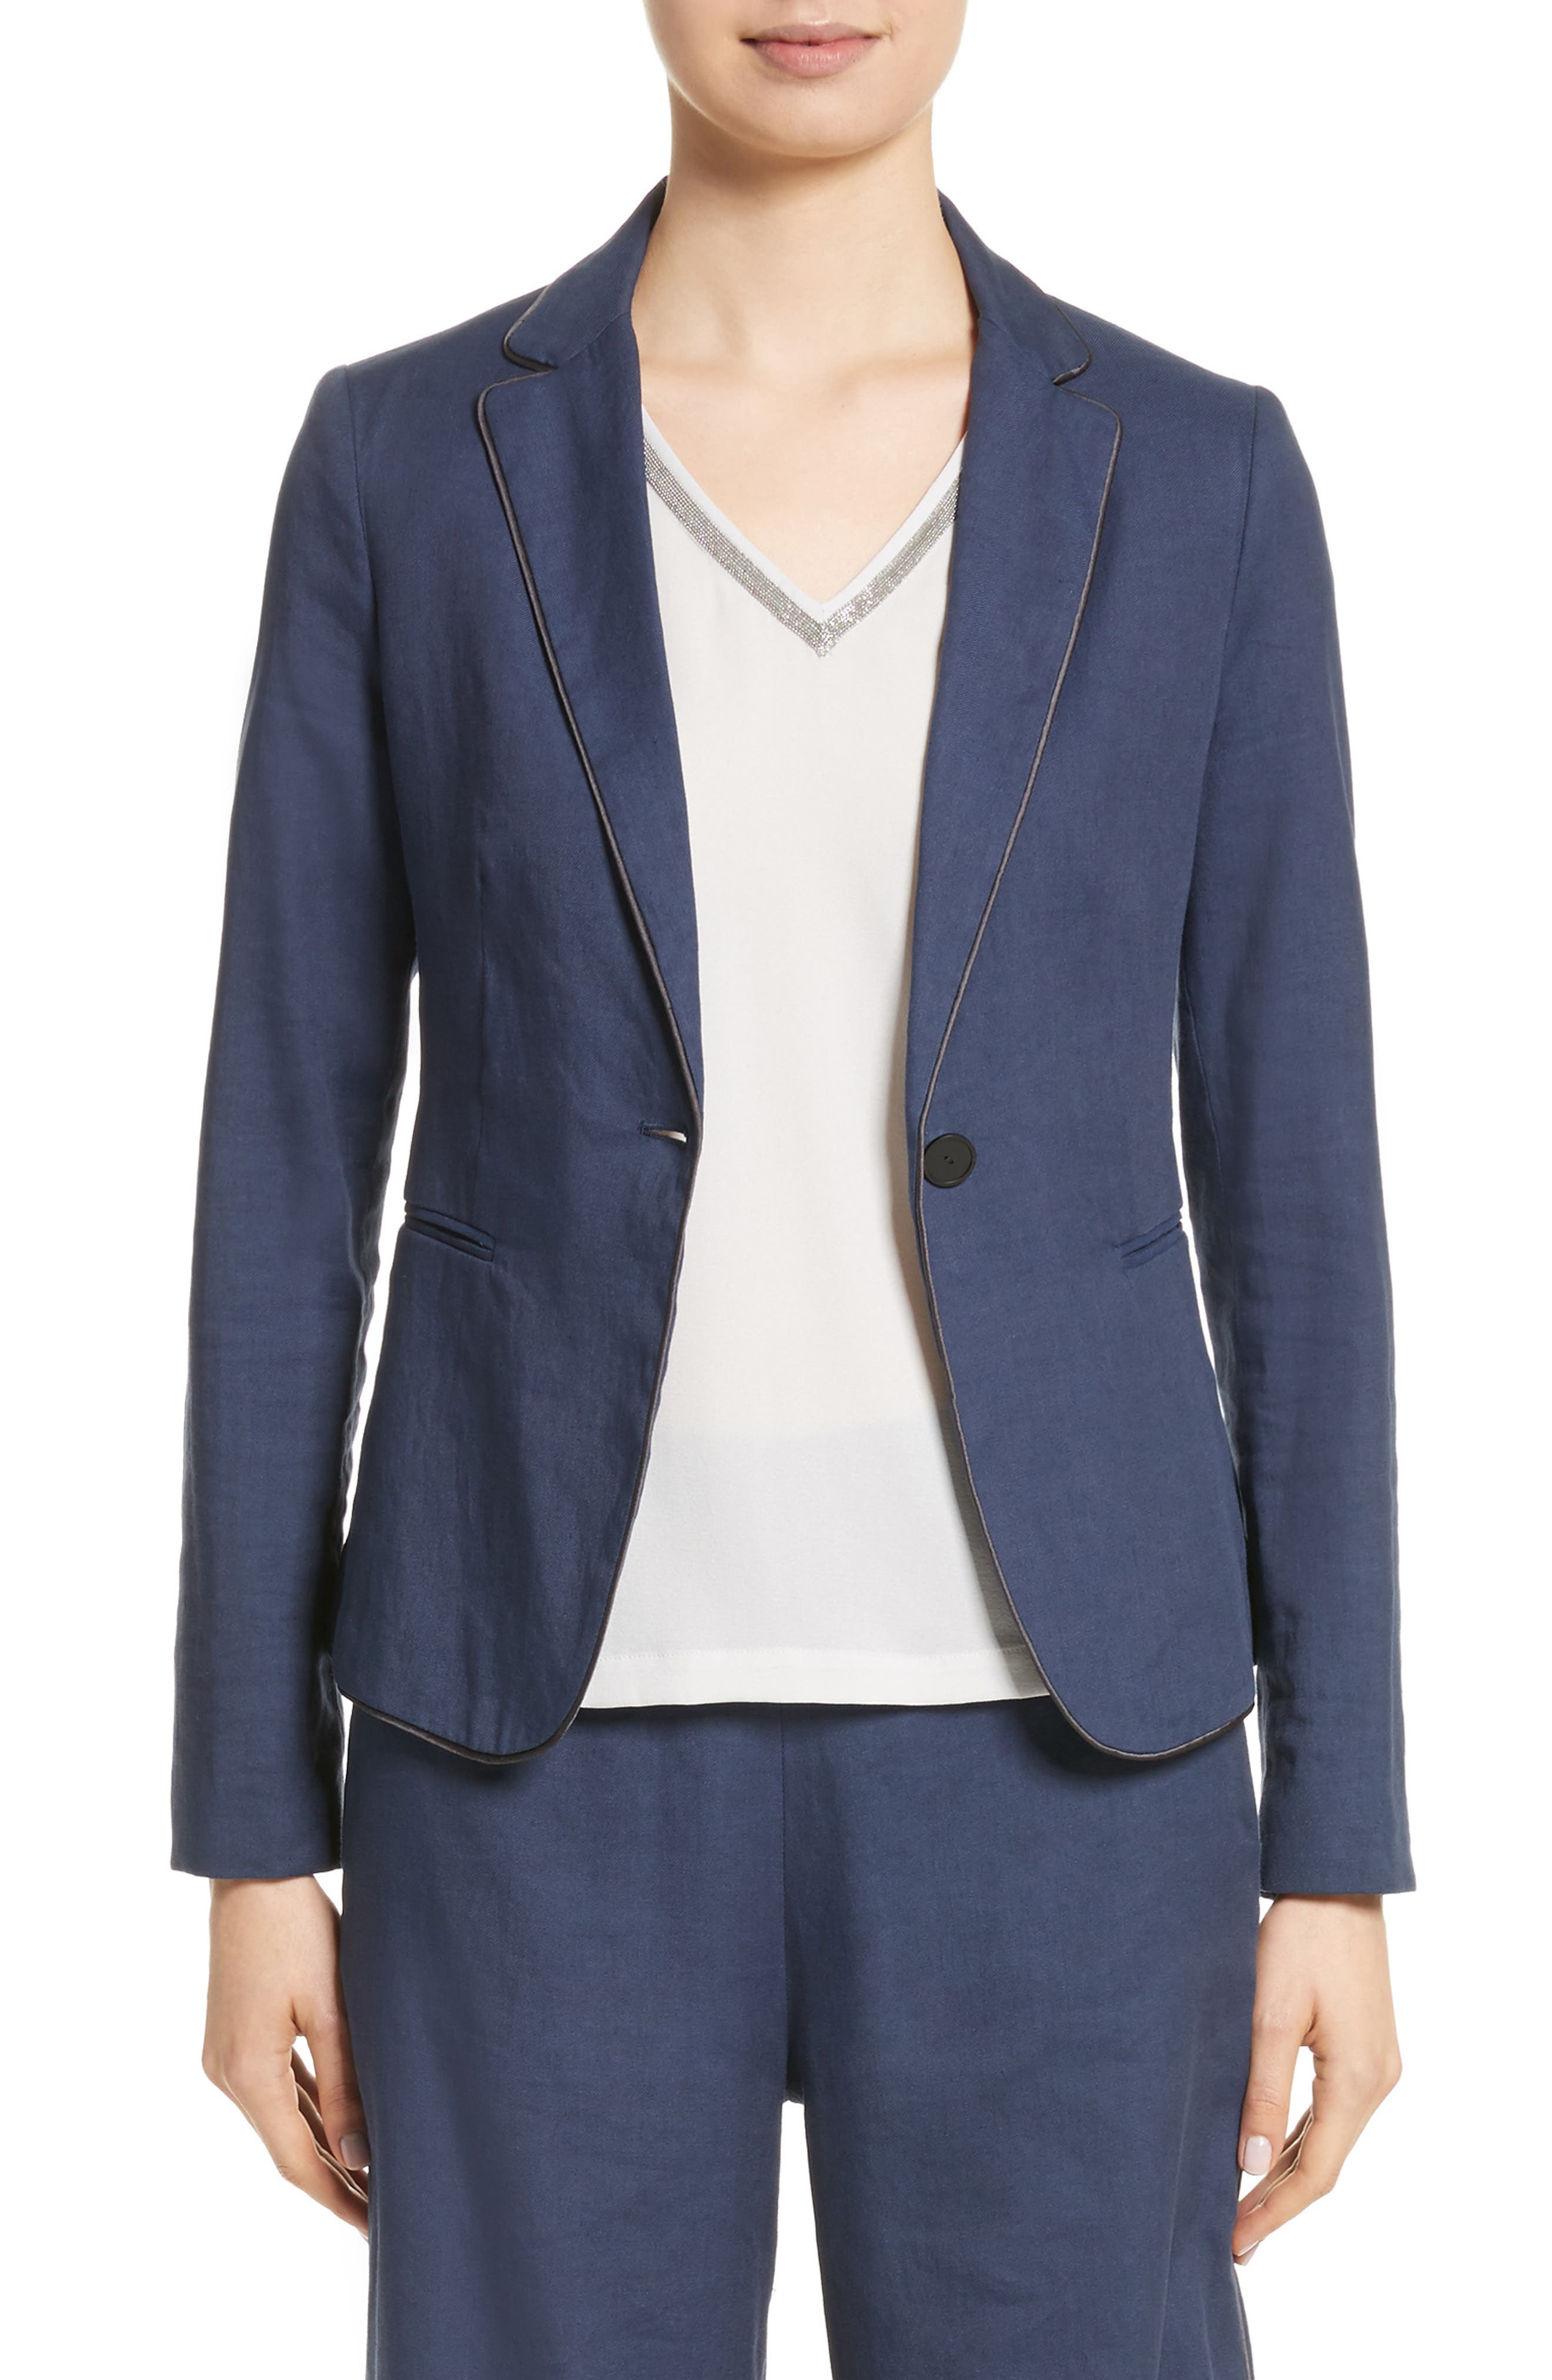 Piped Linen & Cotton Blend Blazer,                             Main thumbnail 1, color,                             Navy